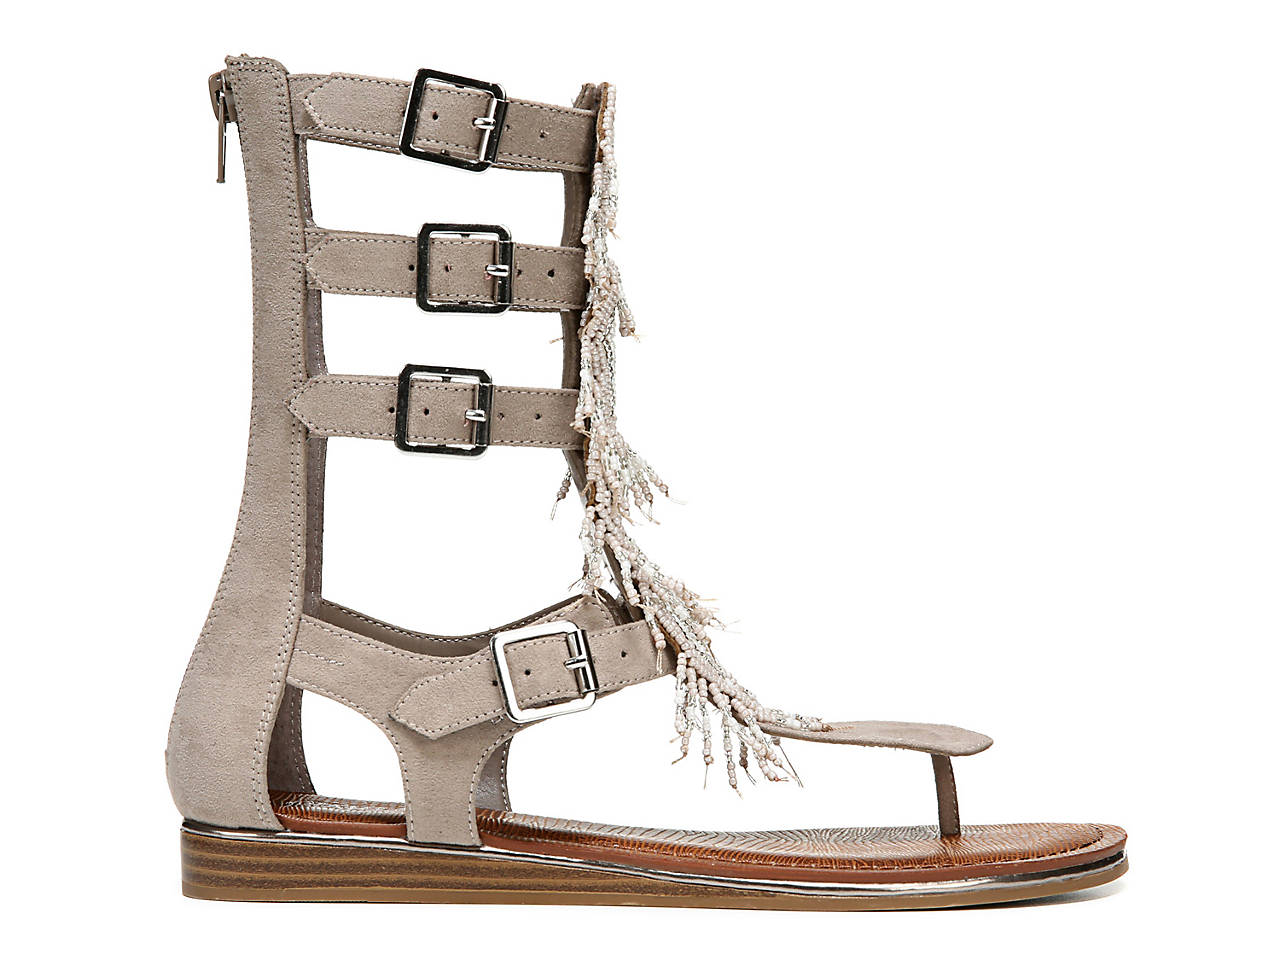 7e9ea46bed38 Carlos by Carlos Santana Taos Gladiator Sandal Women s Shoes